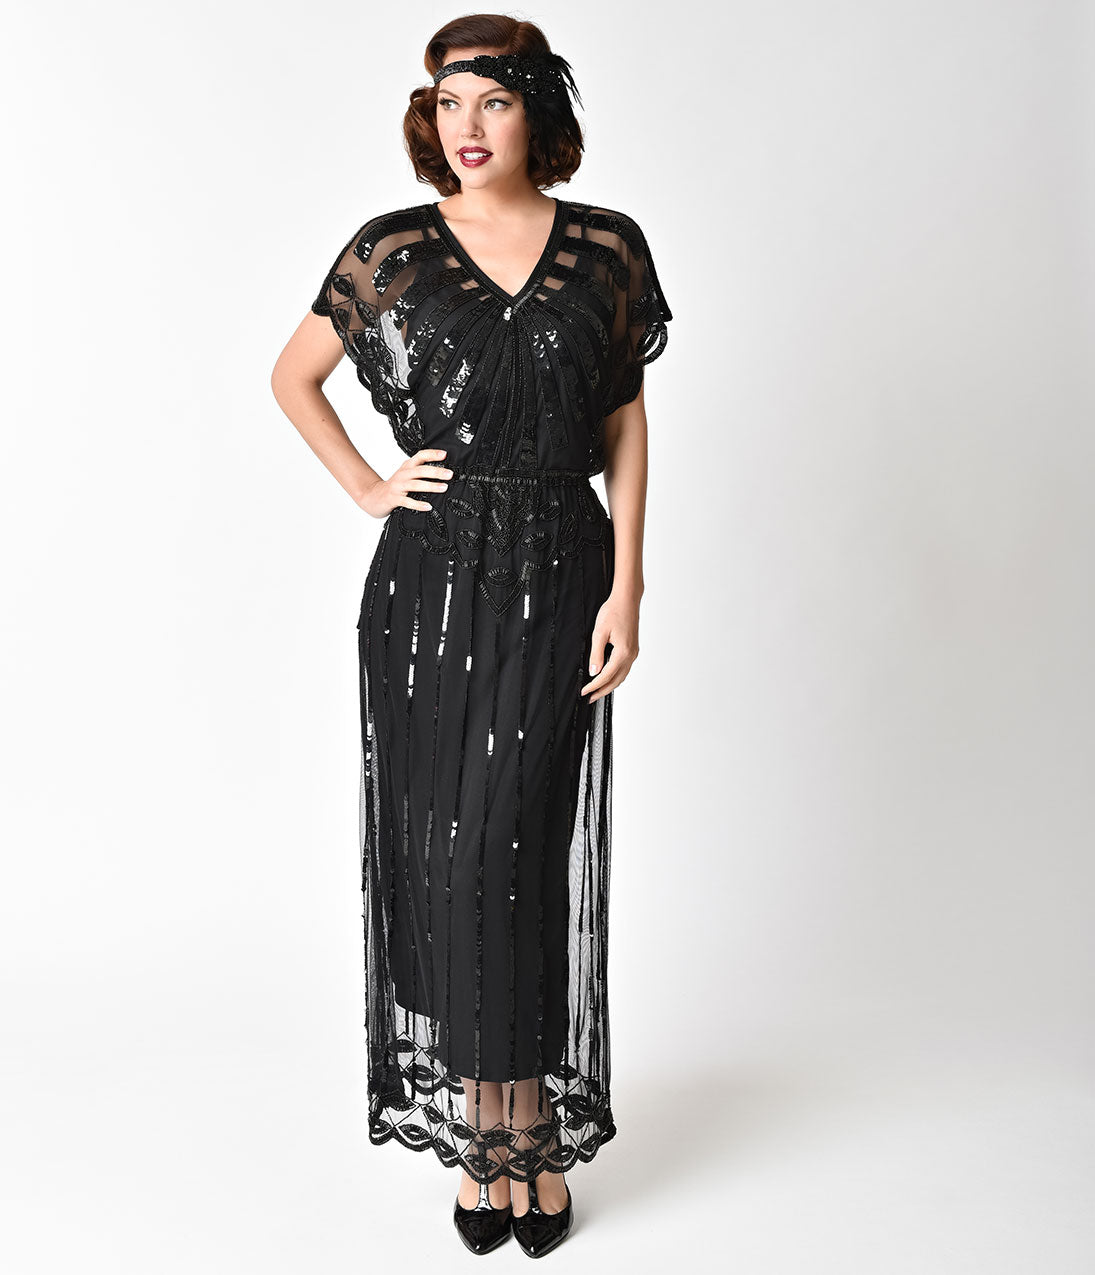 Downton Abbey Inspired Dresses 1920S Black Beaded Deco Angelina Maxi Flapper Dress $126.00 AT vintagedancer.com